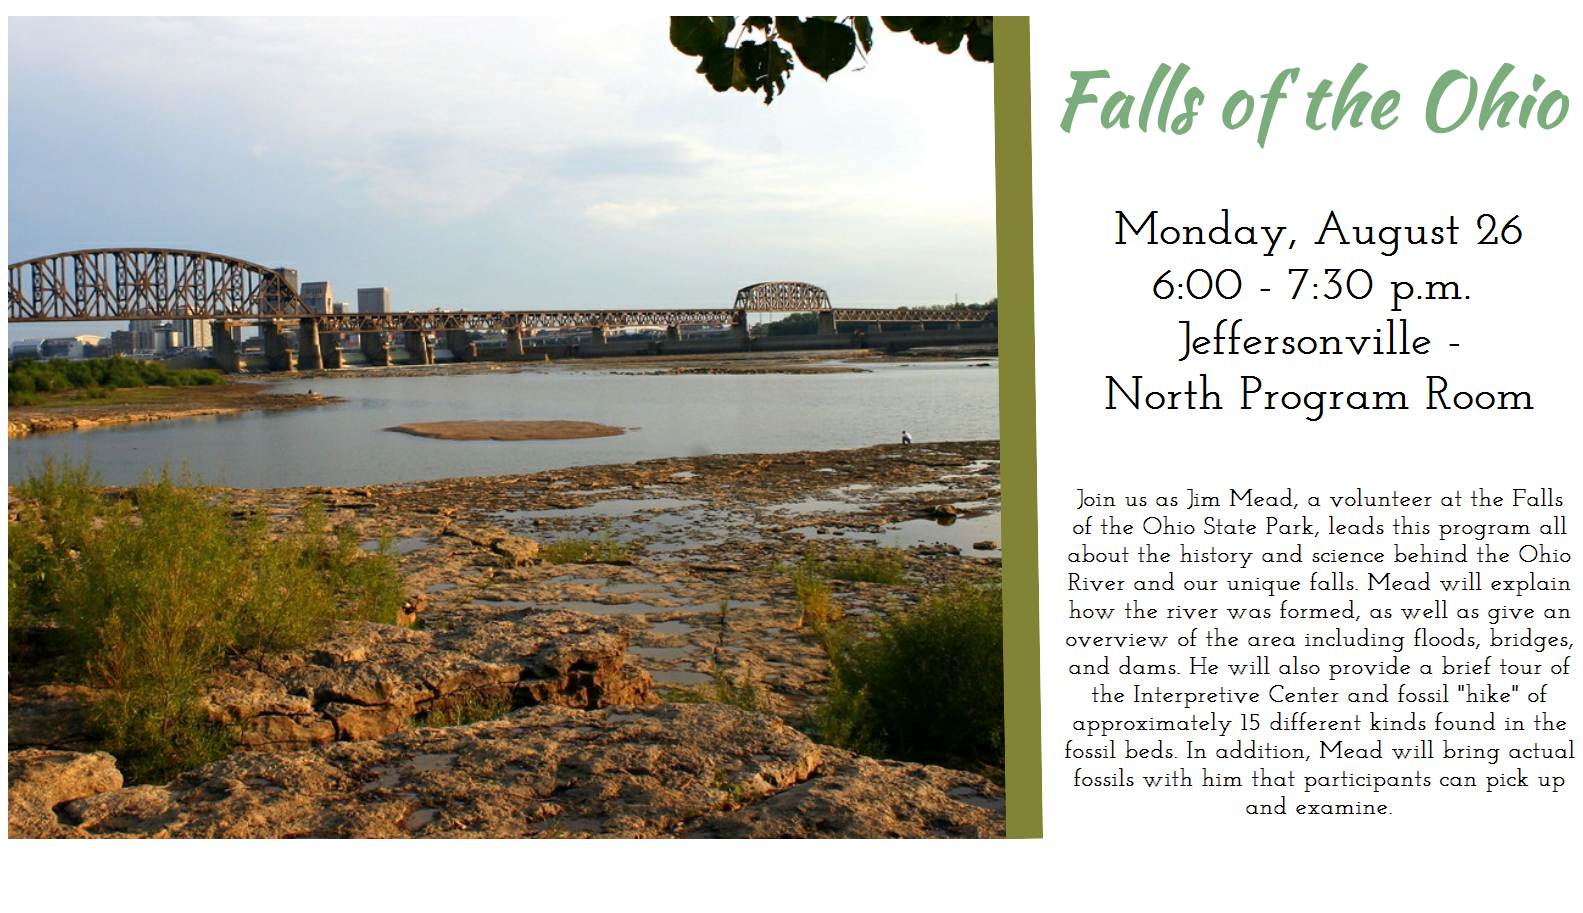 Flyer for the Falls of the Ohio historical program on August 26th, 2019